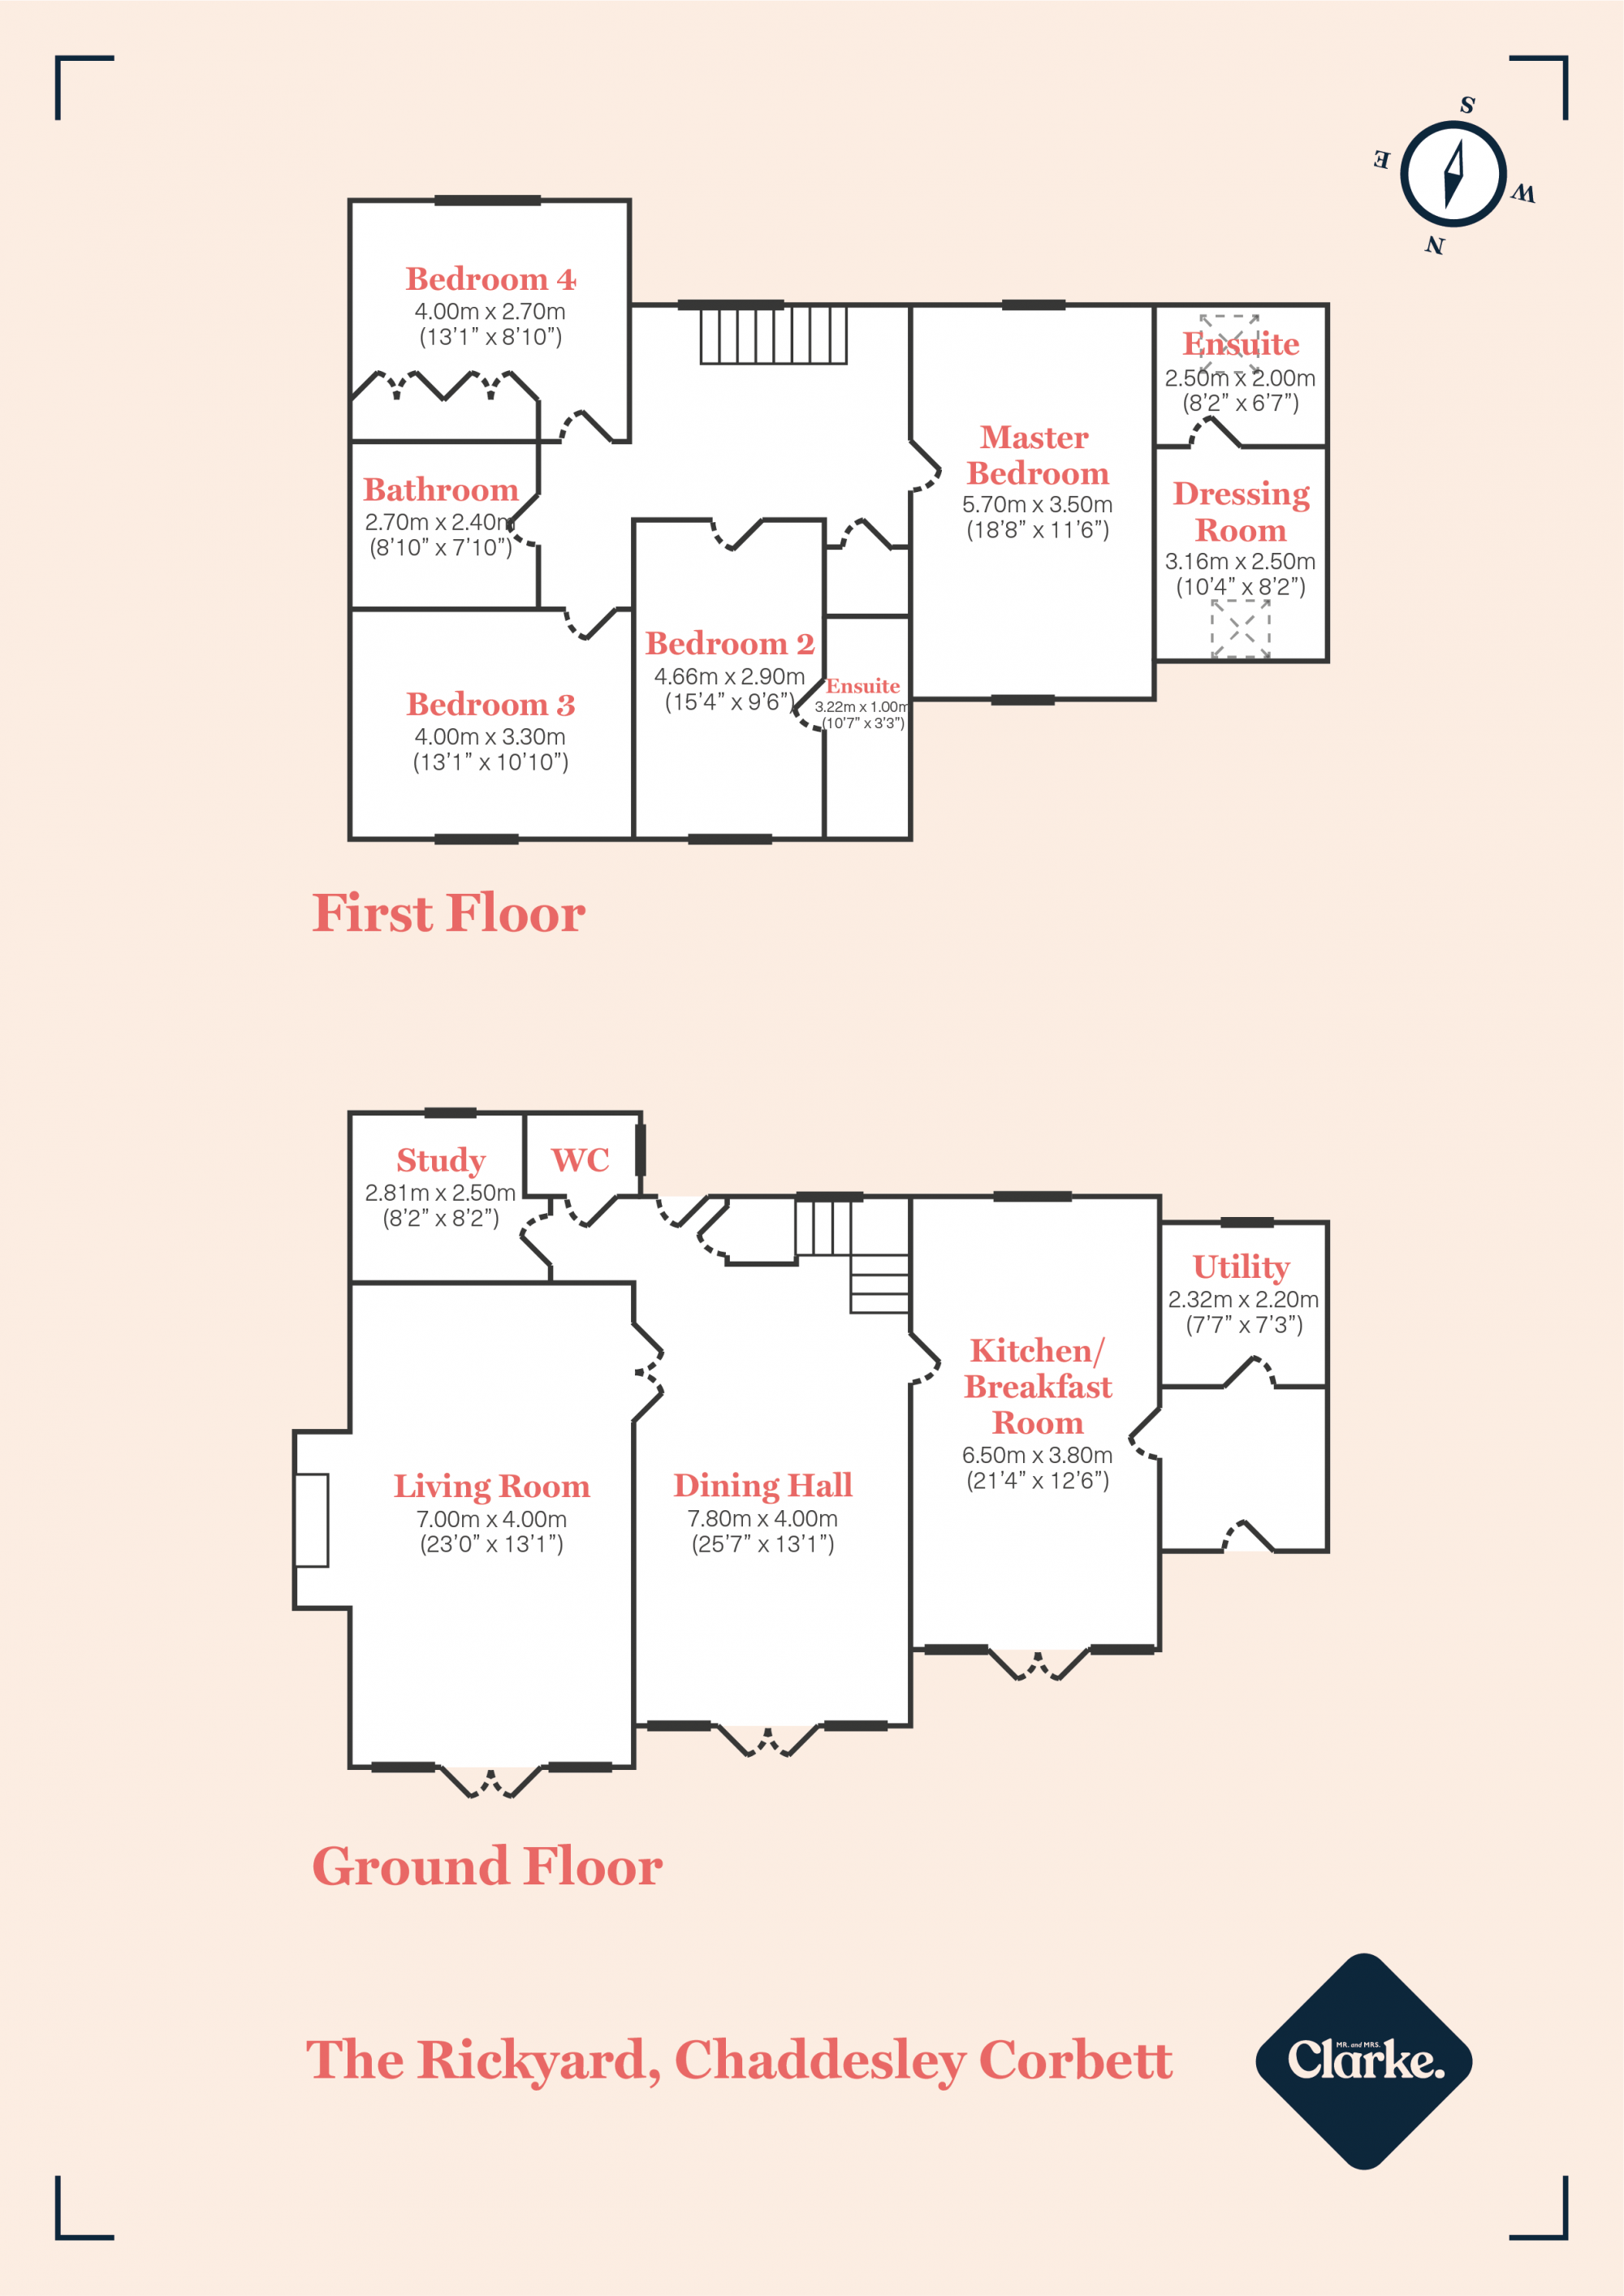 The Rickyard, Chaddesley Corbett. Floorplan.